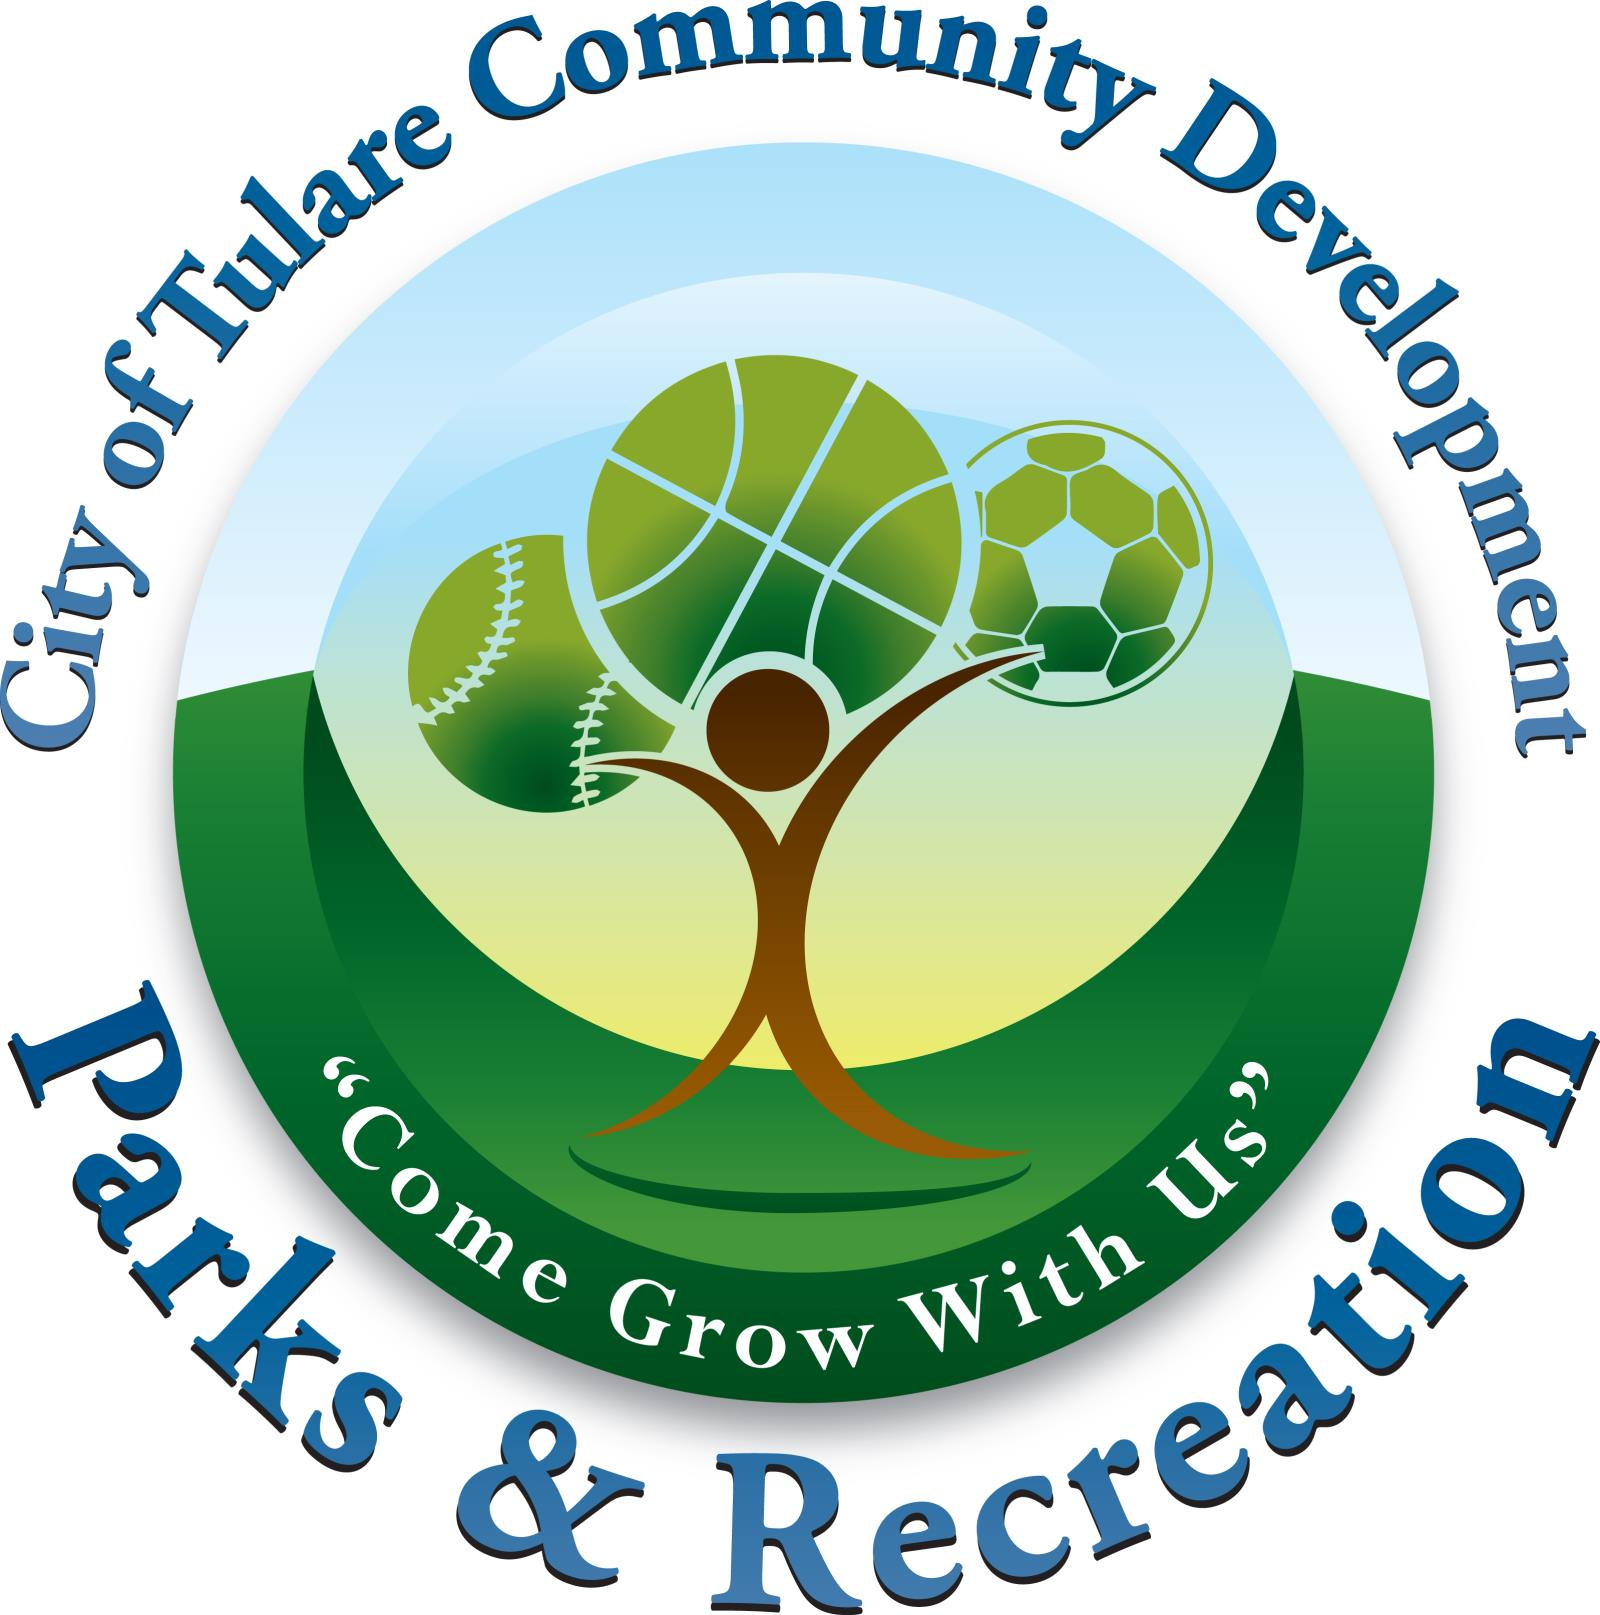 COT-ParksRec-Logo-Final-032714-Grow